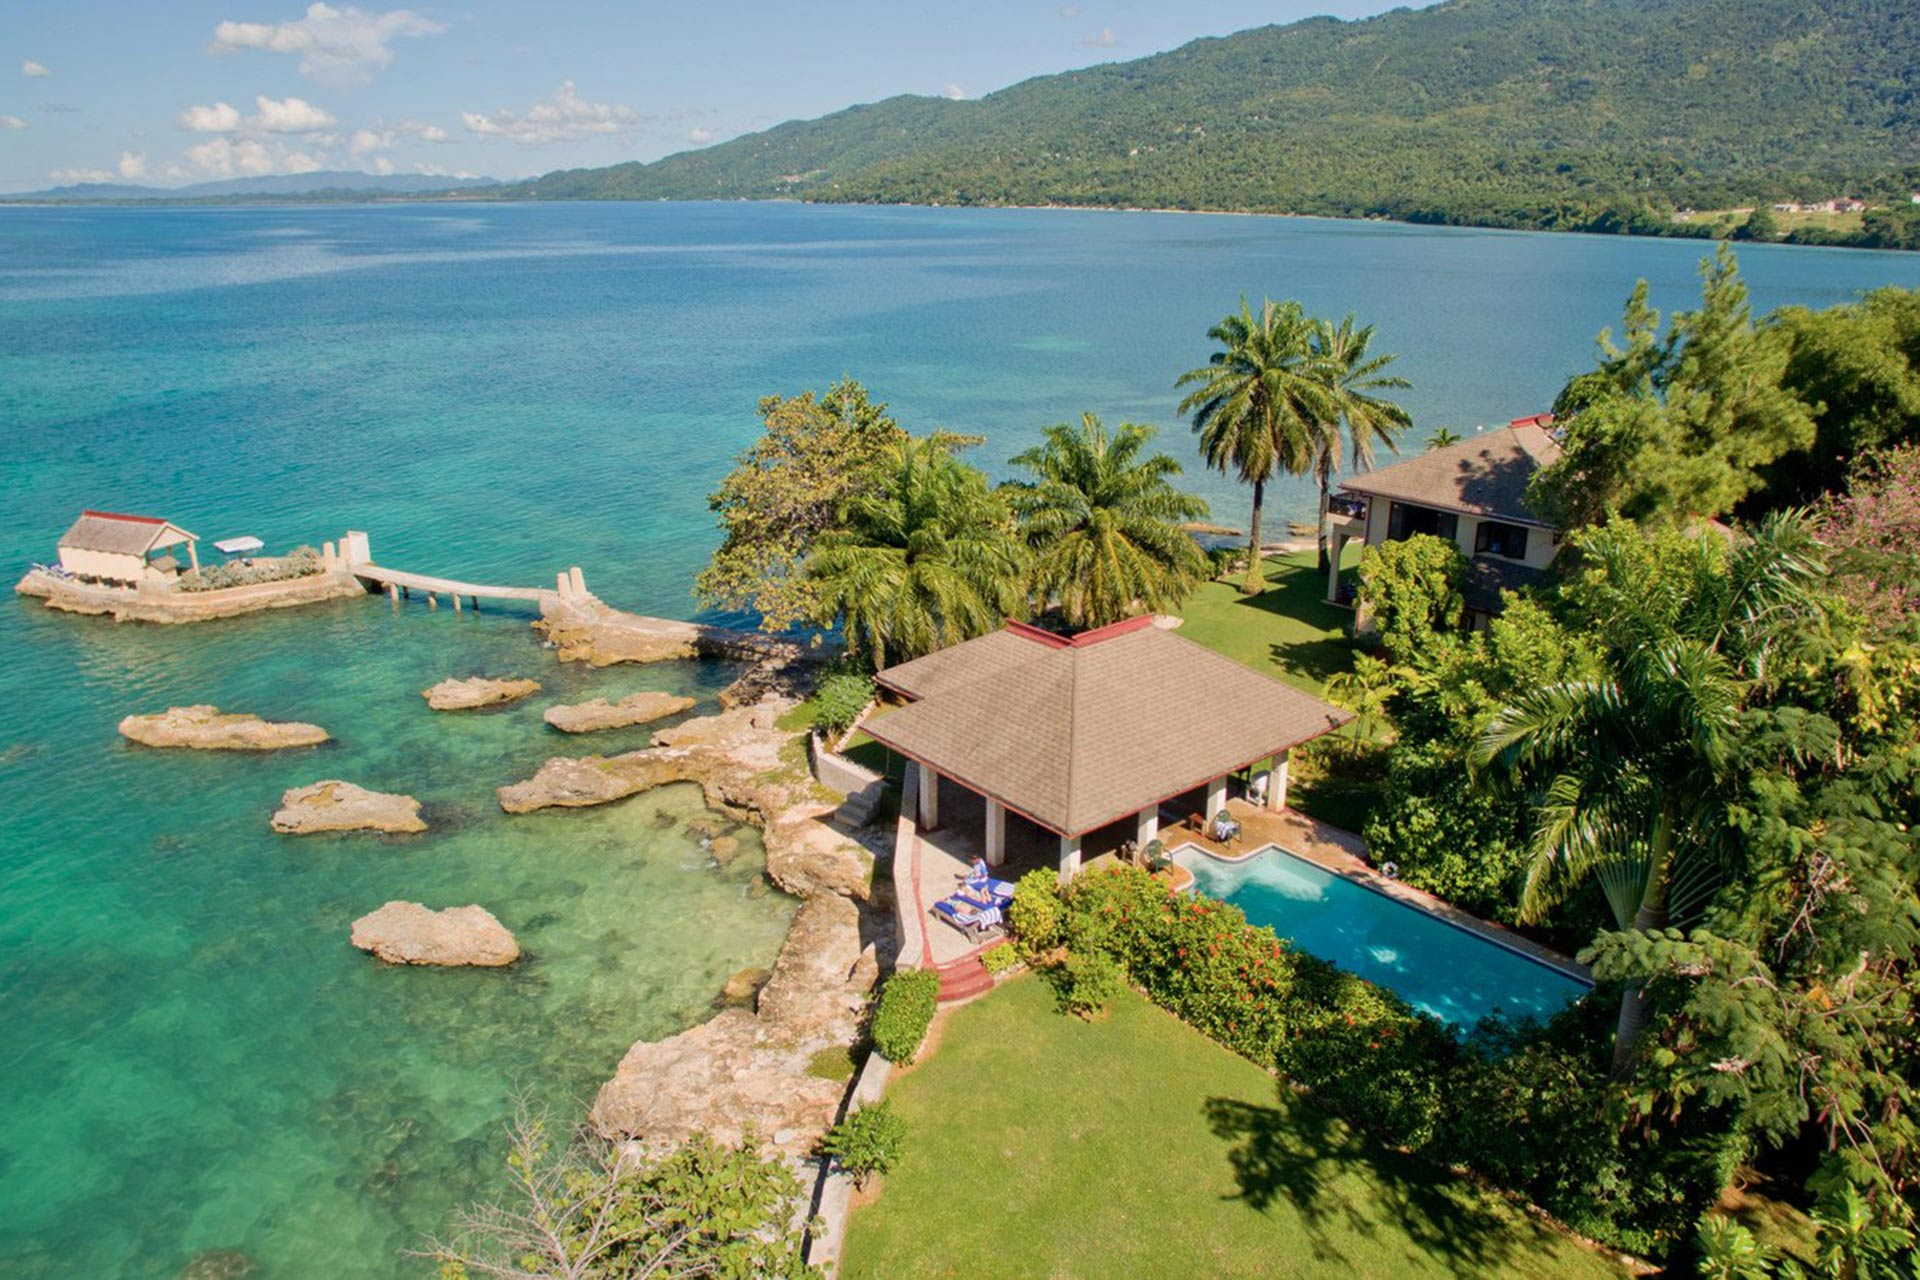 Villa With Private Pool at Bluefields Bay Villas in Jamaica